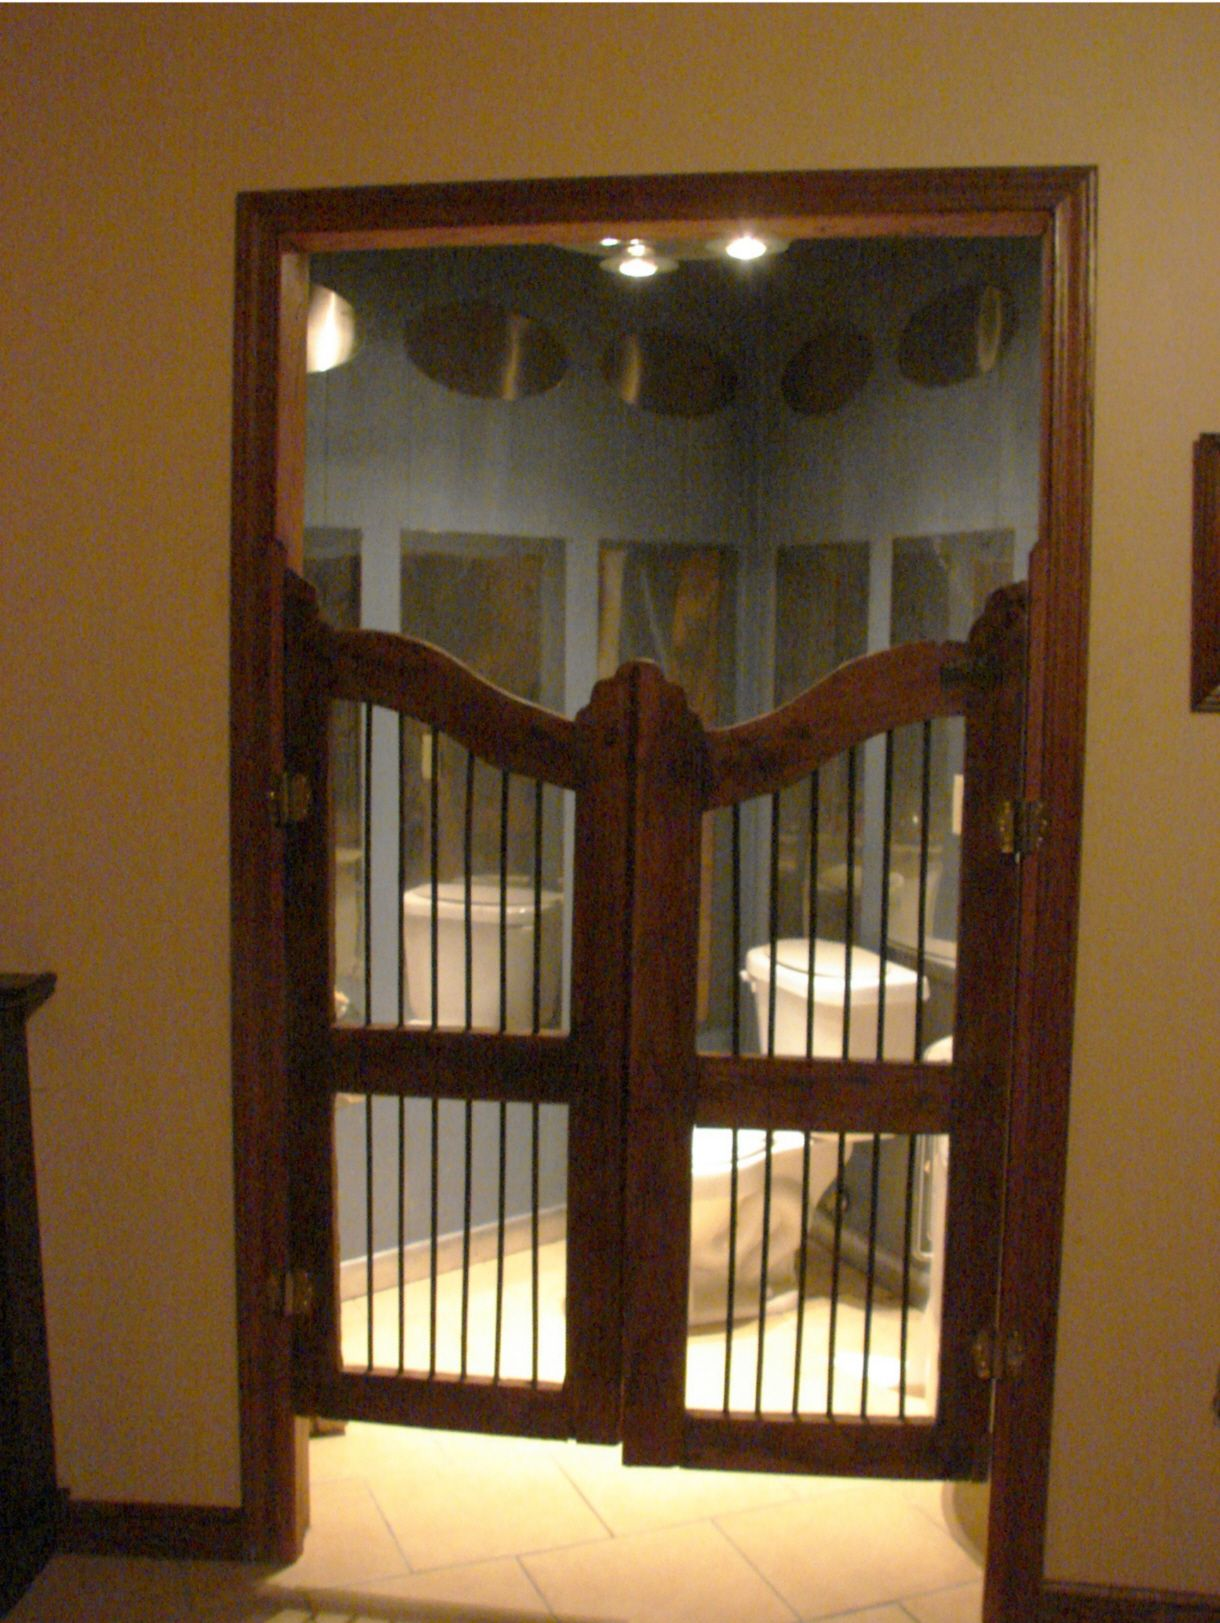 Le Meilleur Saloon Doors Love This Idea For The Arch Way We May Have Ce Mois Ci